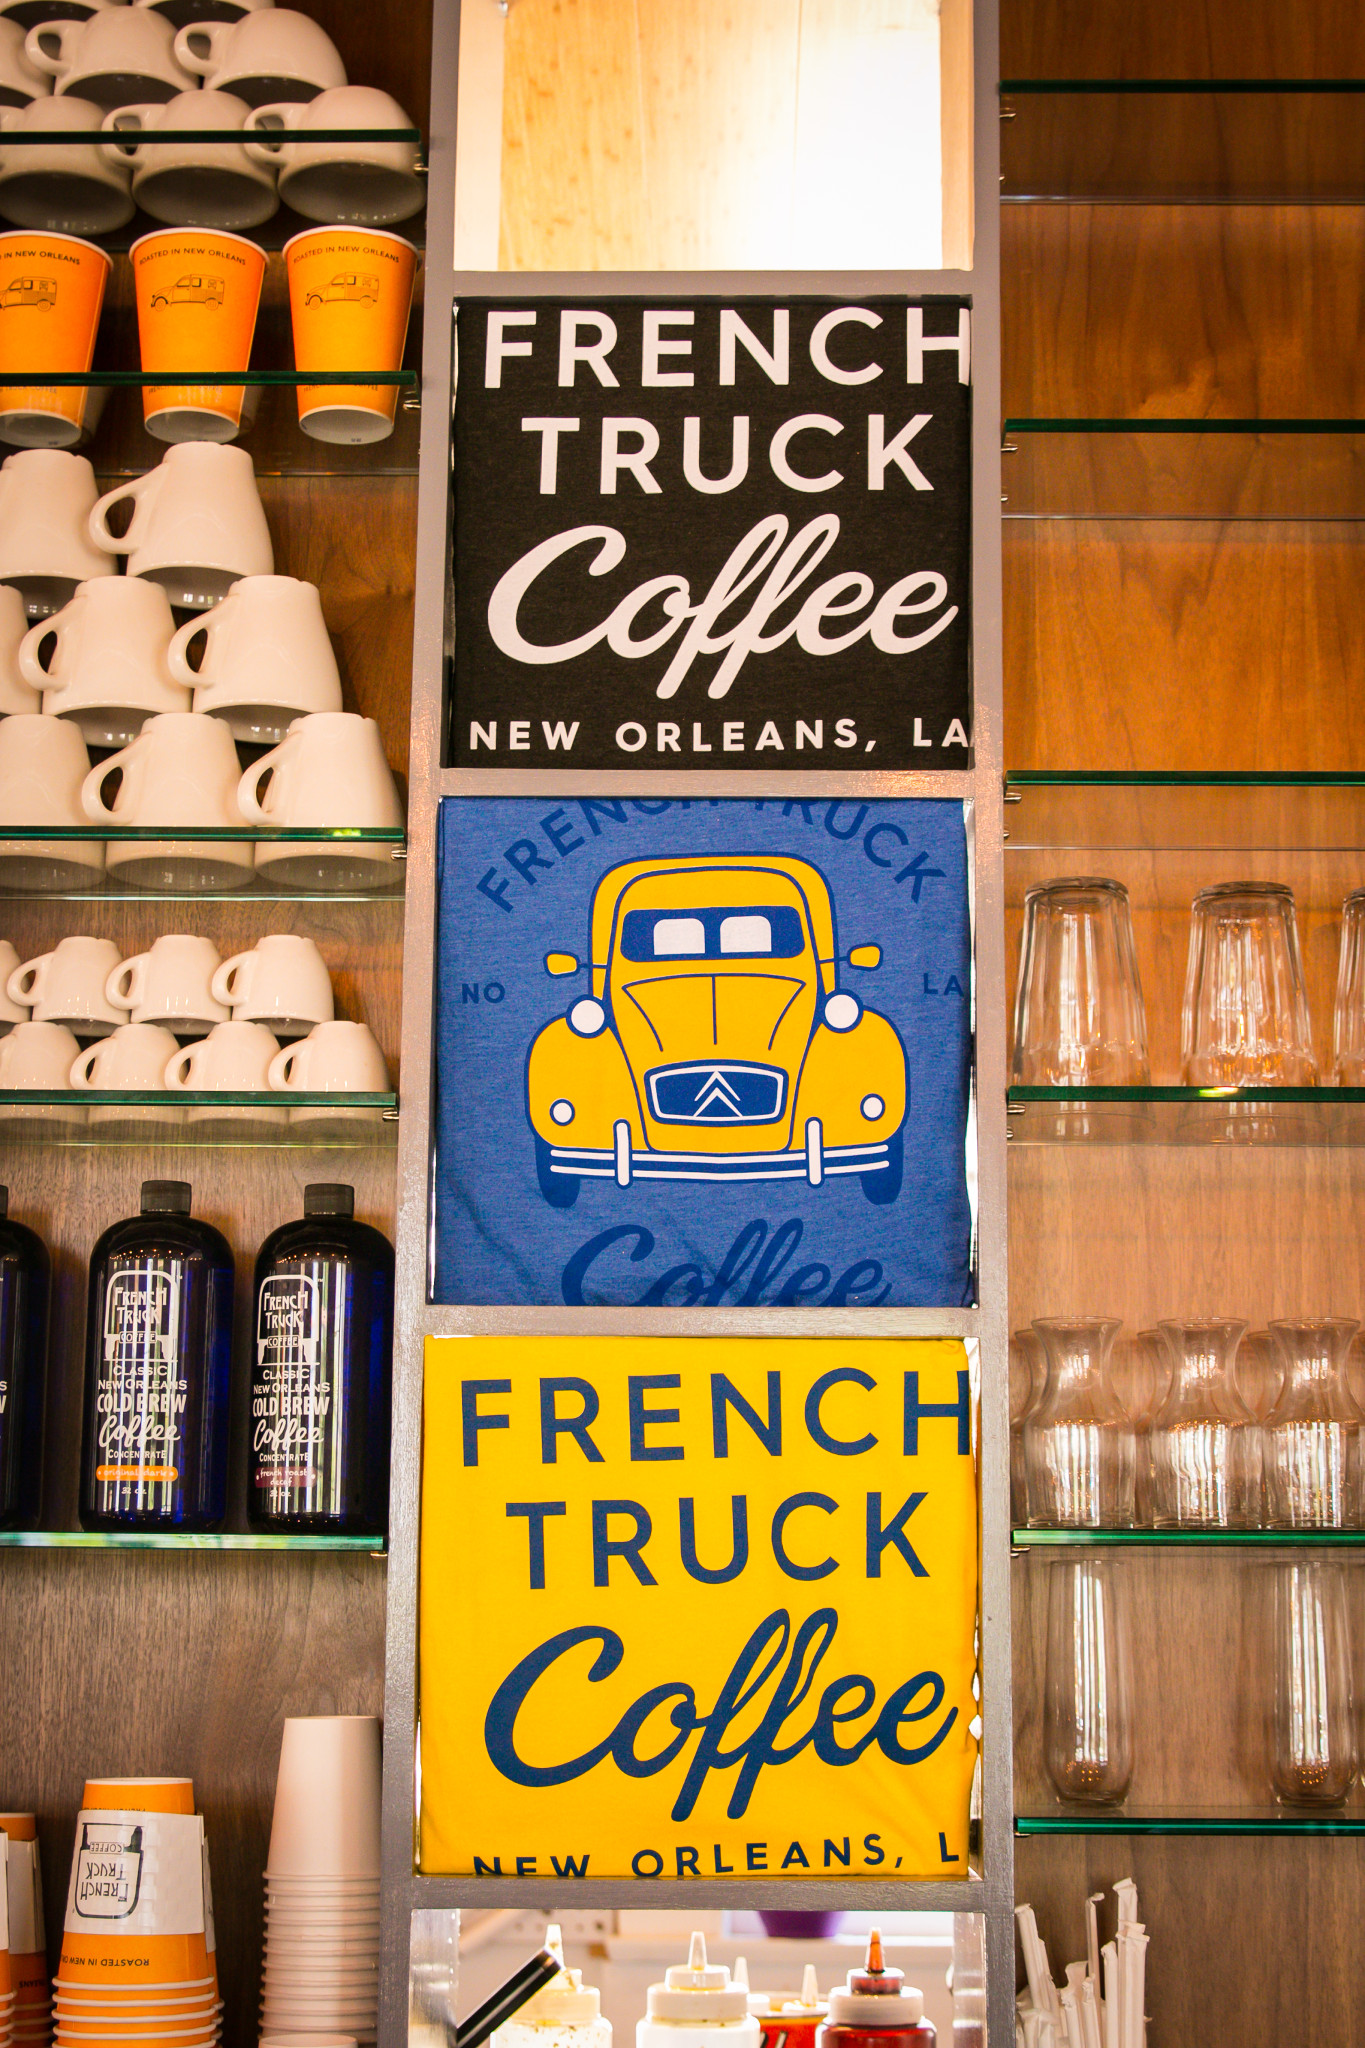 Local roasters French Truck Coffee have two neighborhood outposts plus availability in grocery stores across the city. (Photo: Rebecca Ratliff)